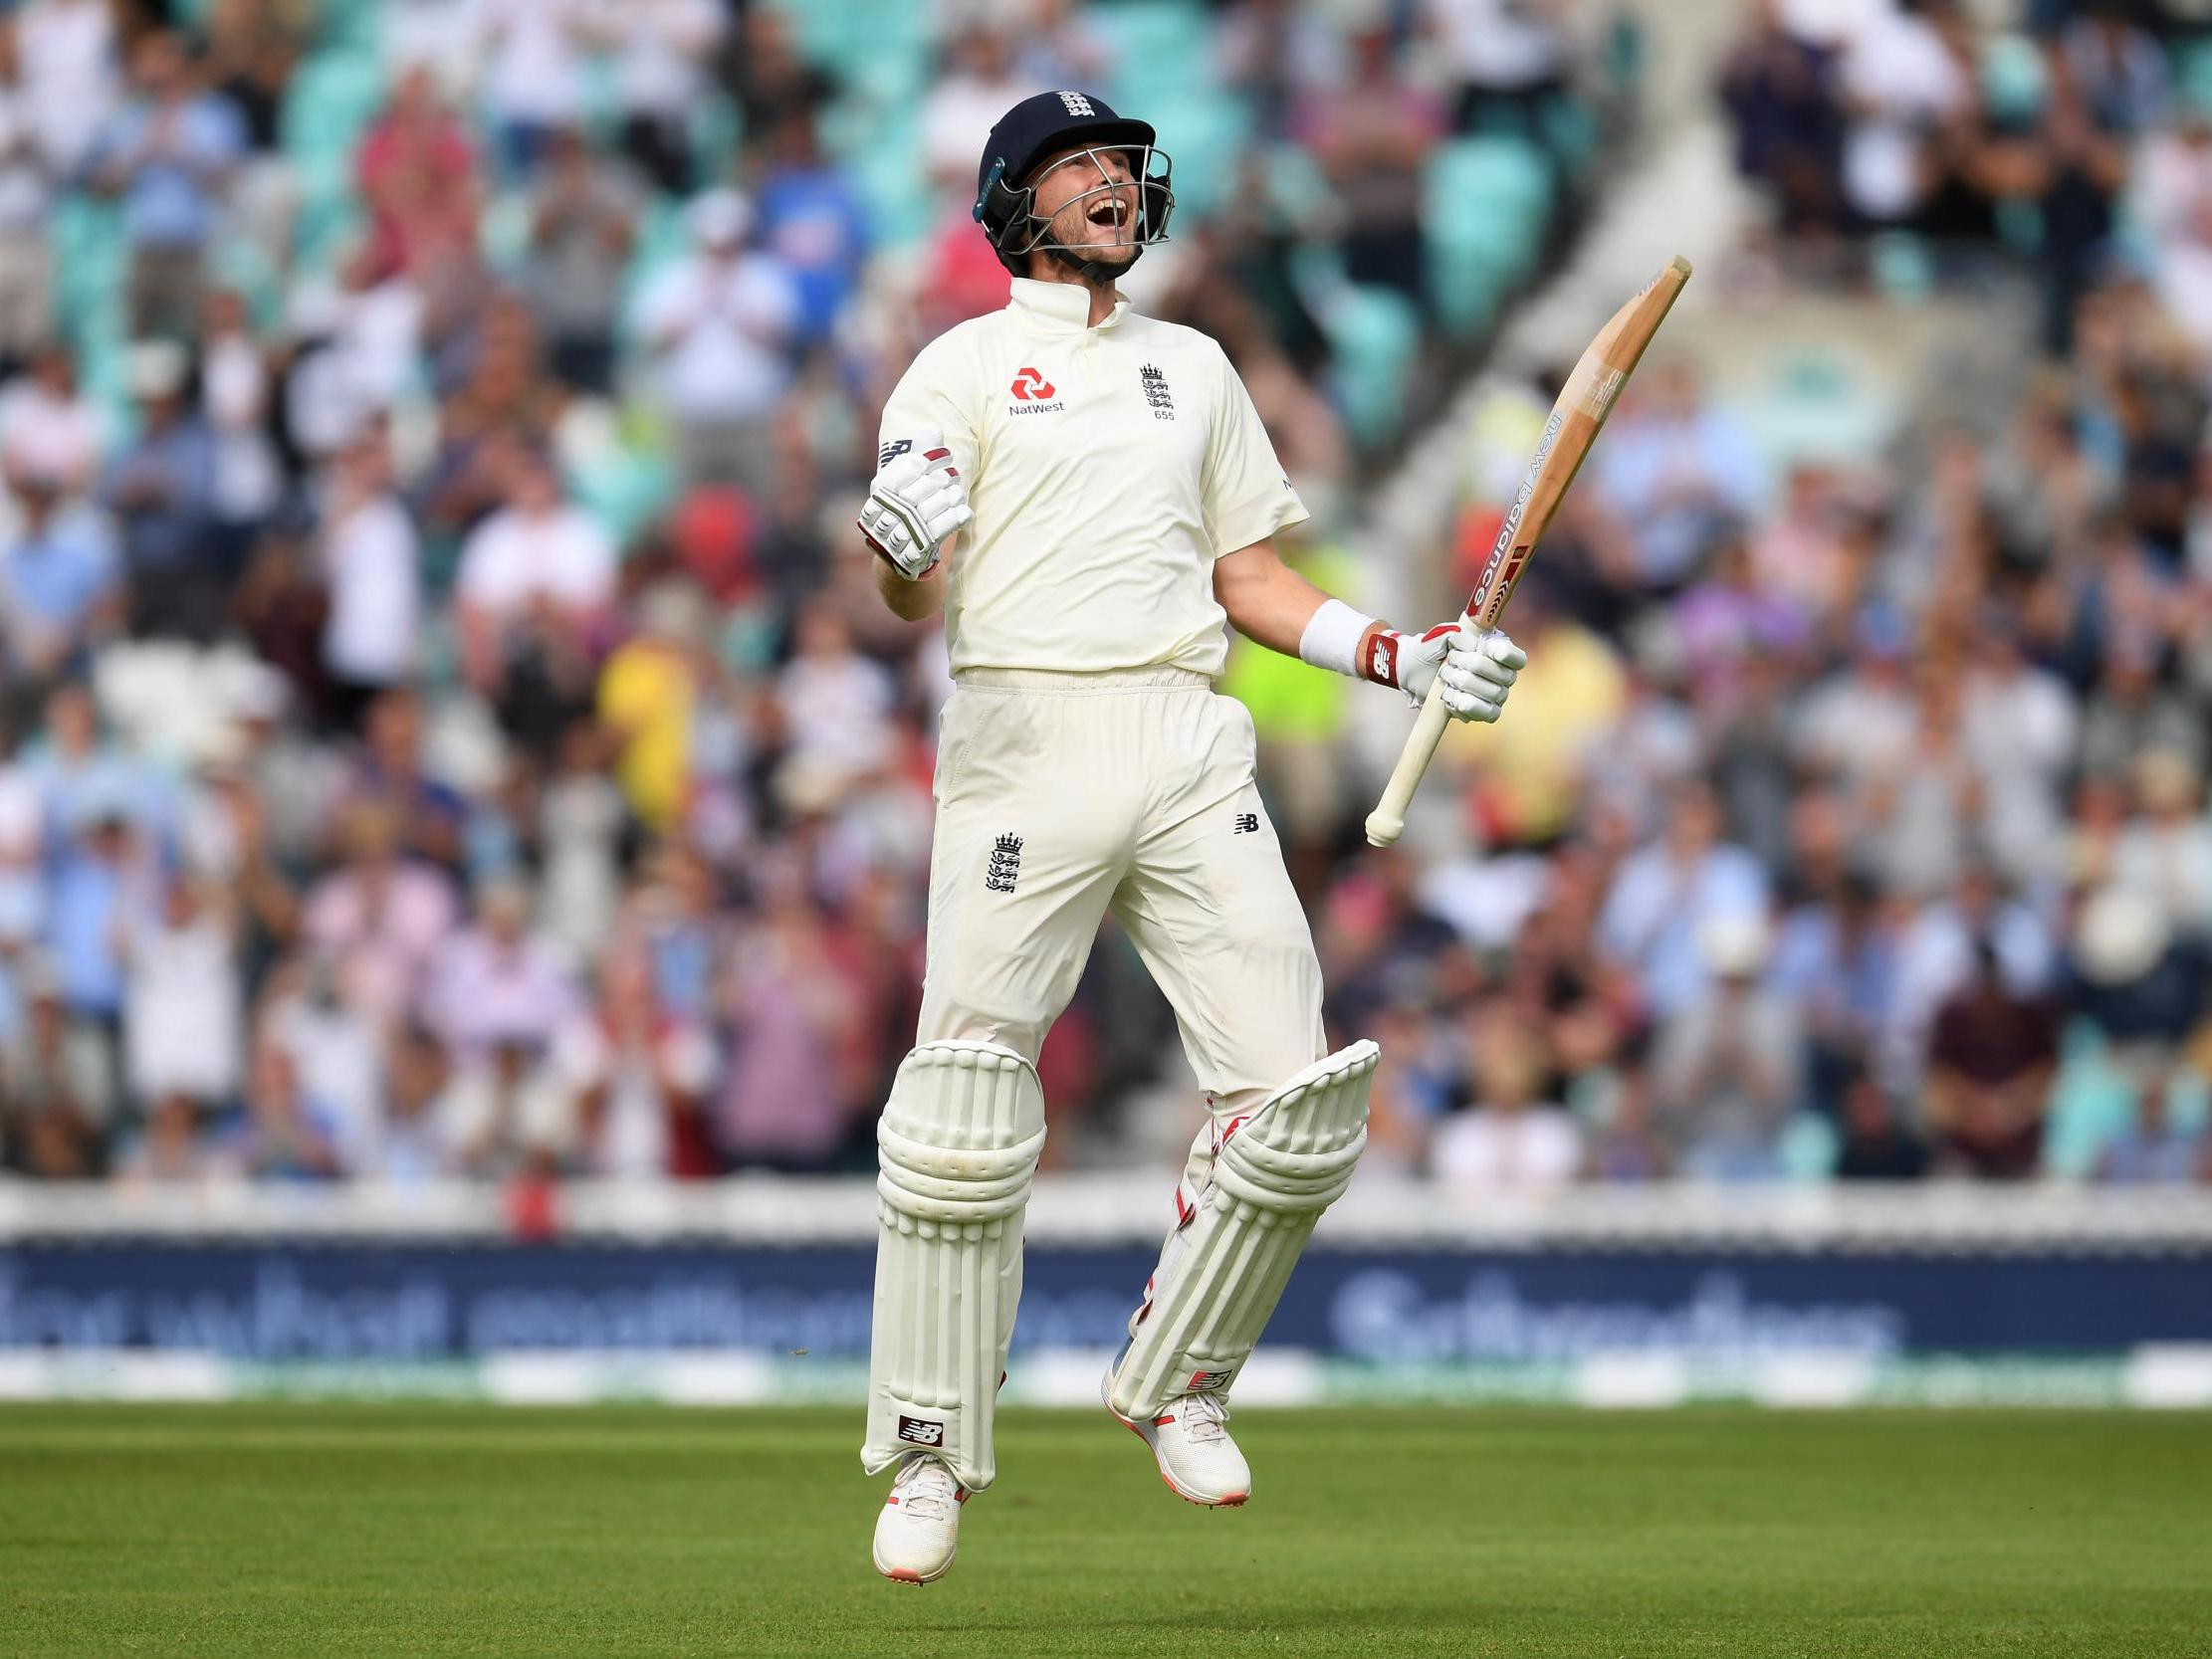 England should make Jos Buttler Test captain and unleash Joe Root to become the world's best batsman, says Australia legend Shane Warne